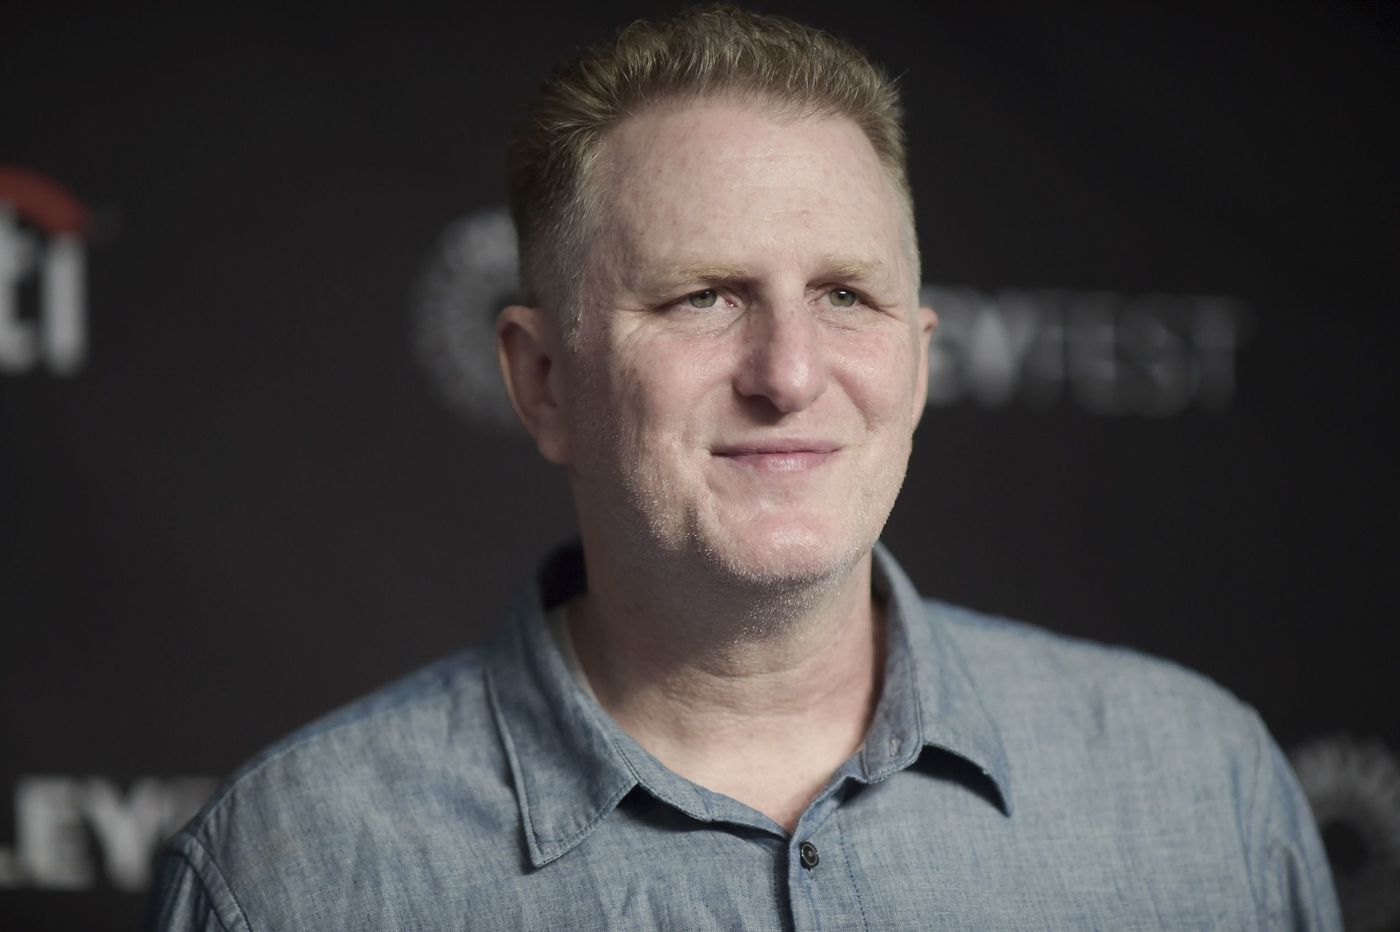 Meek Mill now has beef with actor Michael Rapaport